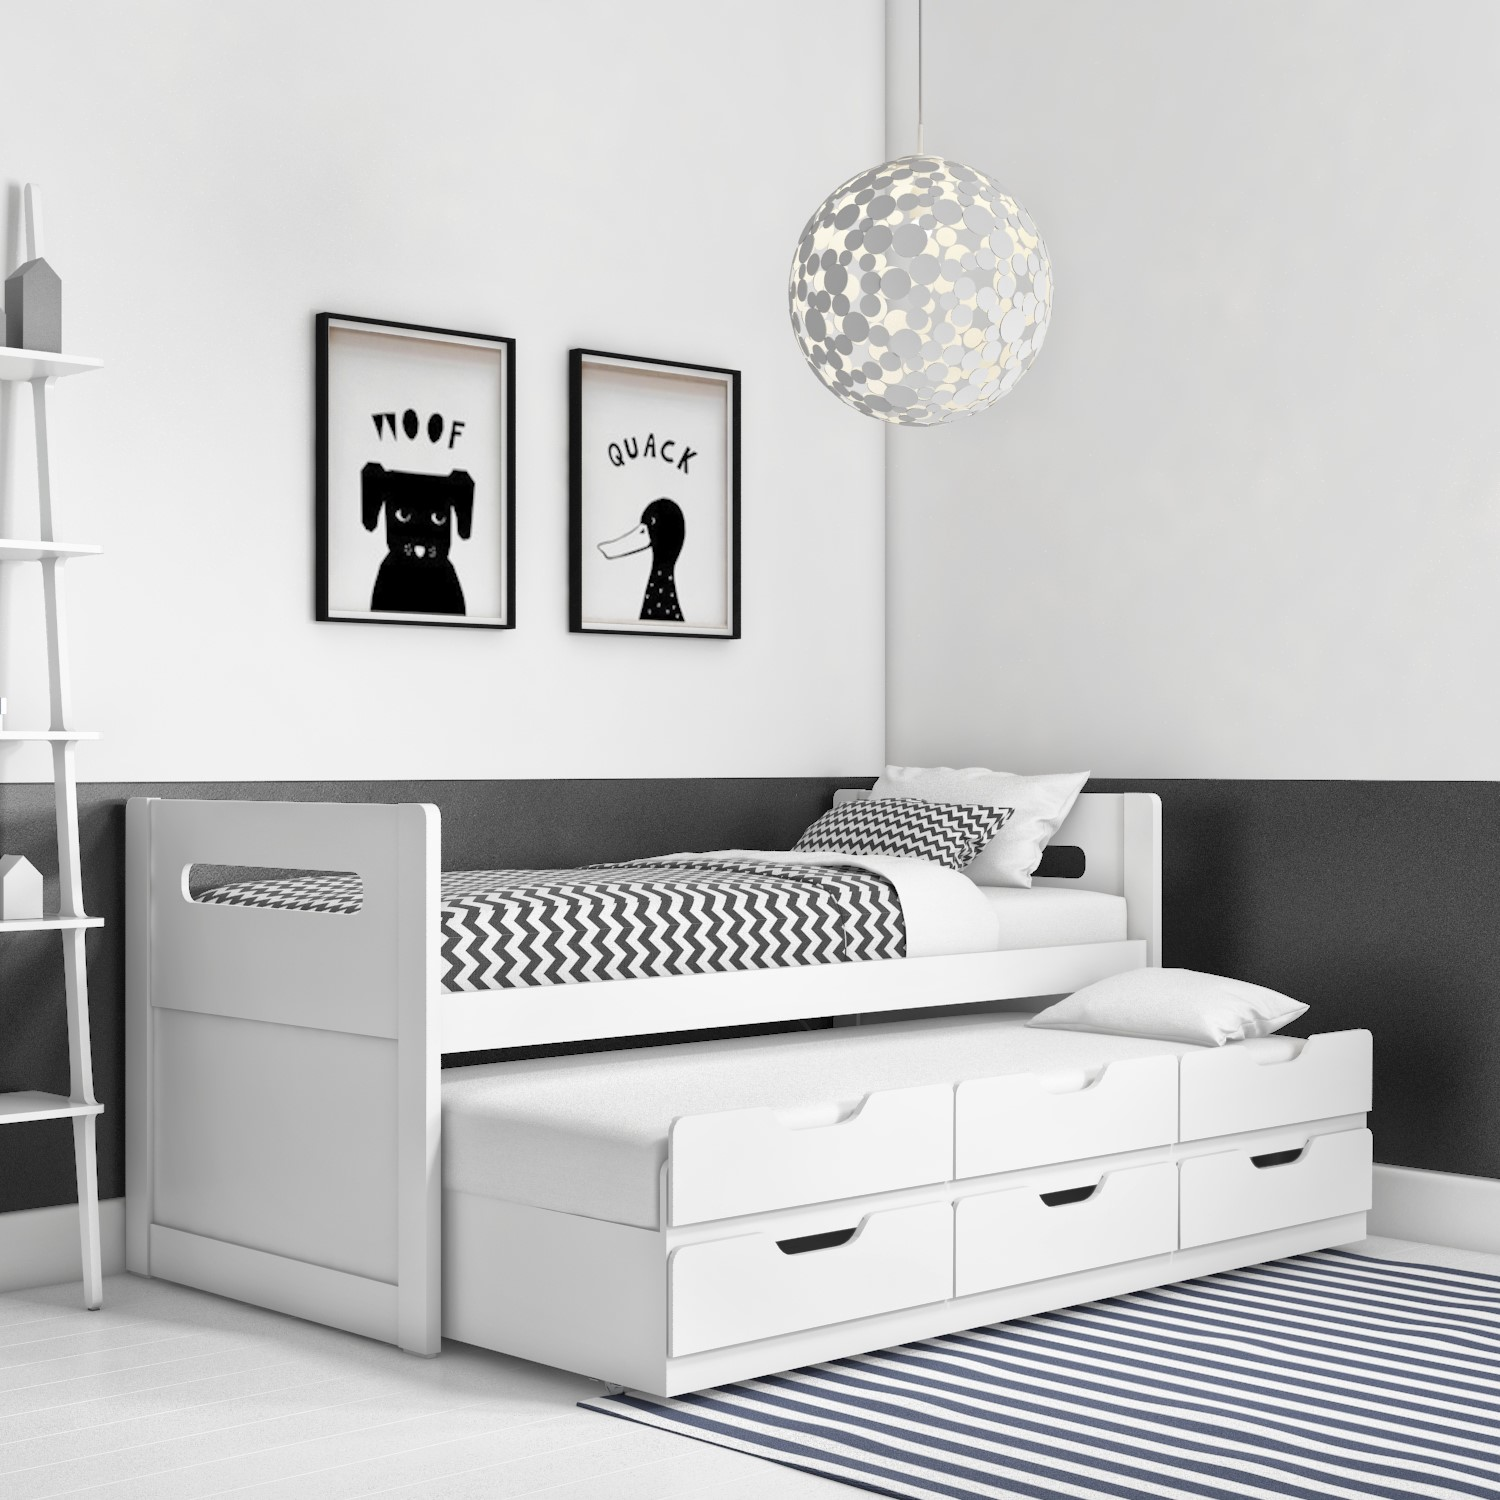 Guest Bed 3ft Single With Pull Out Trundle 3 Drawer Storage Drawers White 5056096010183 Ebay